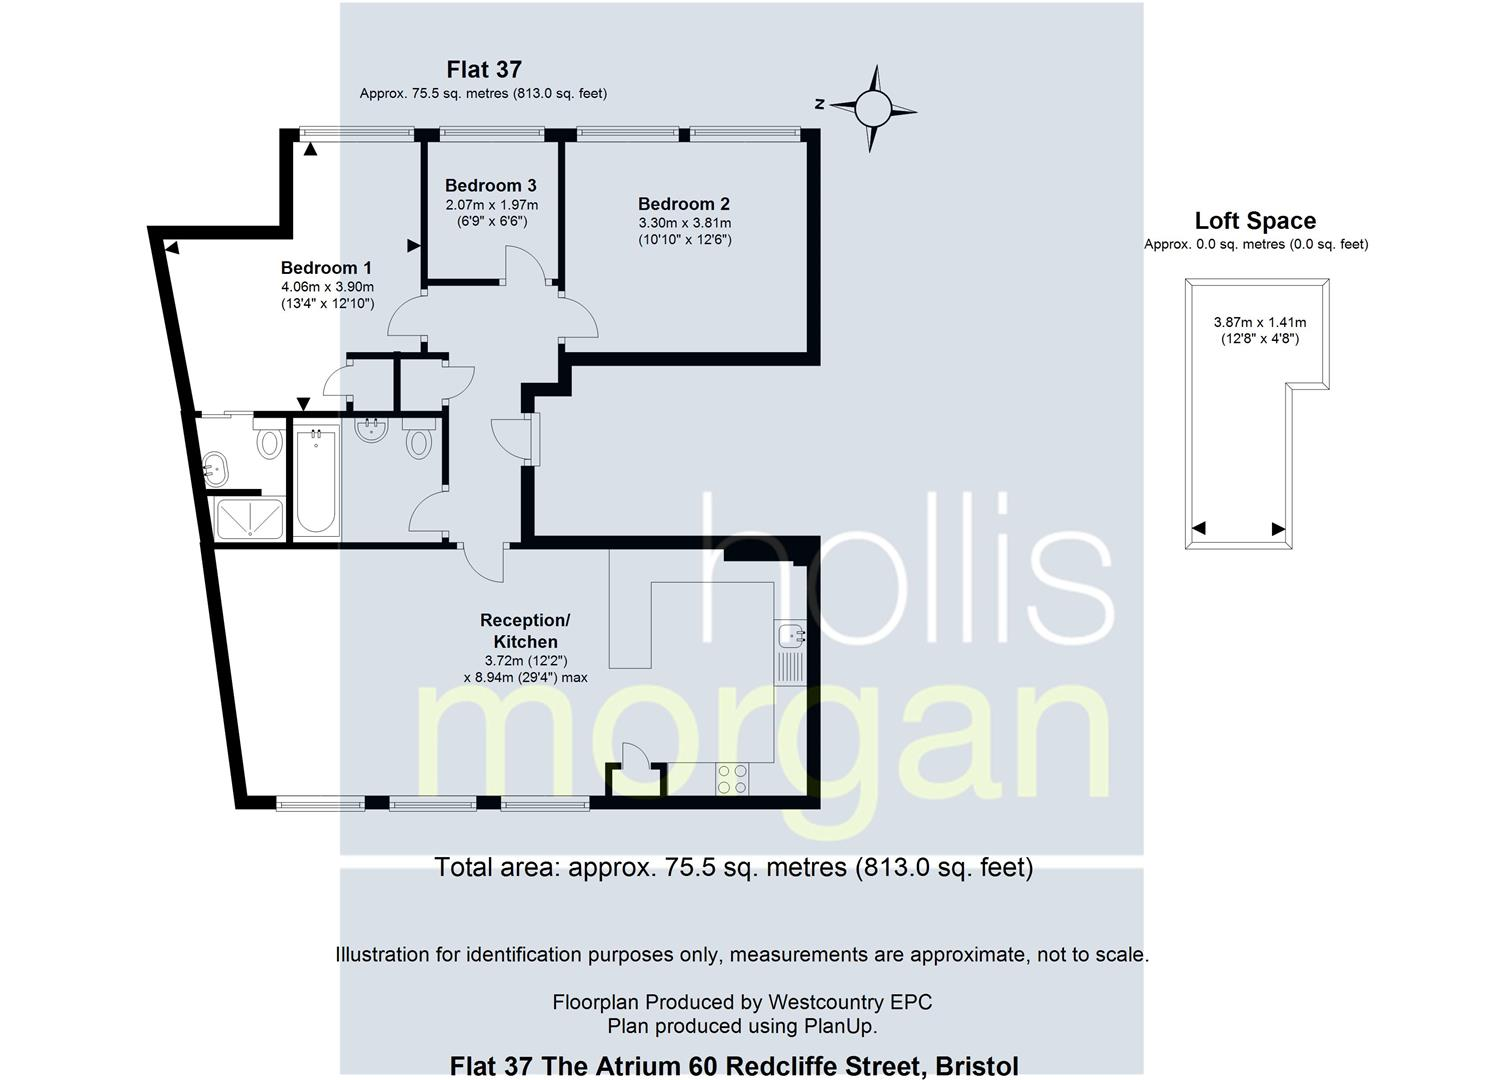 Floorplans For The Artium, Redcliff Street